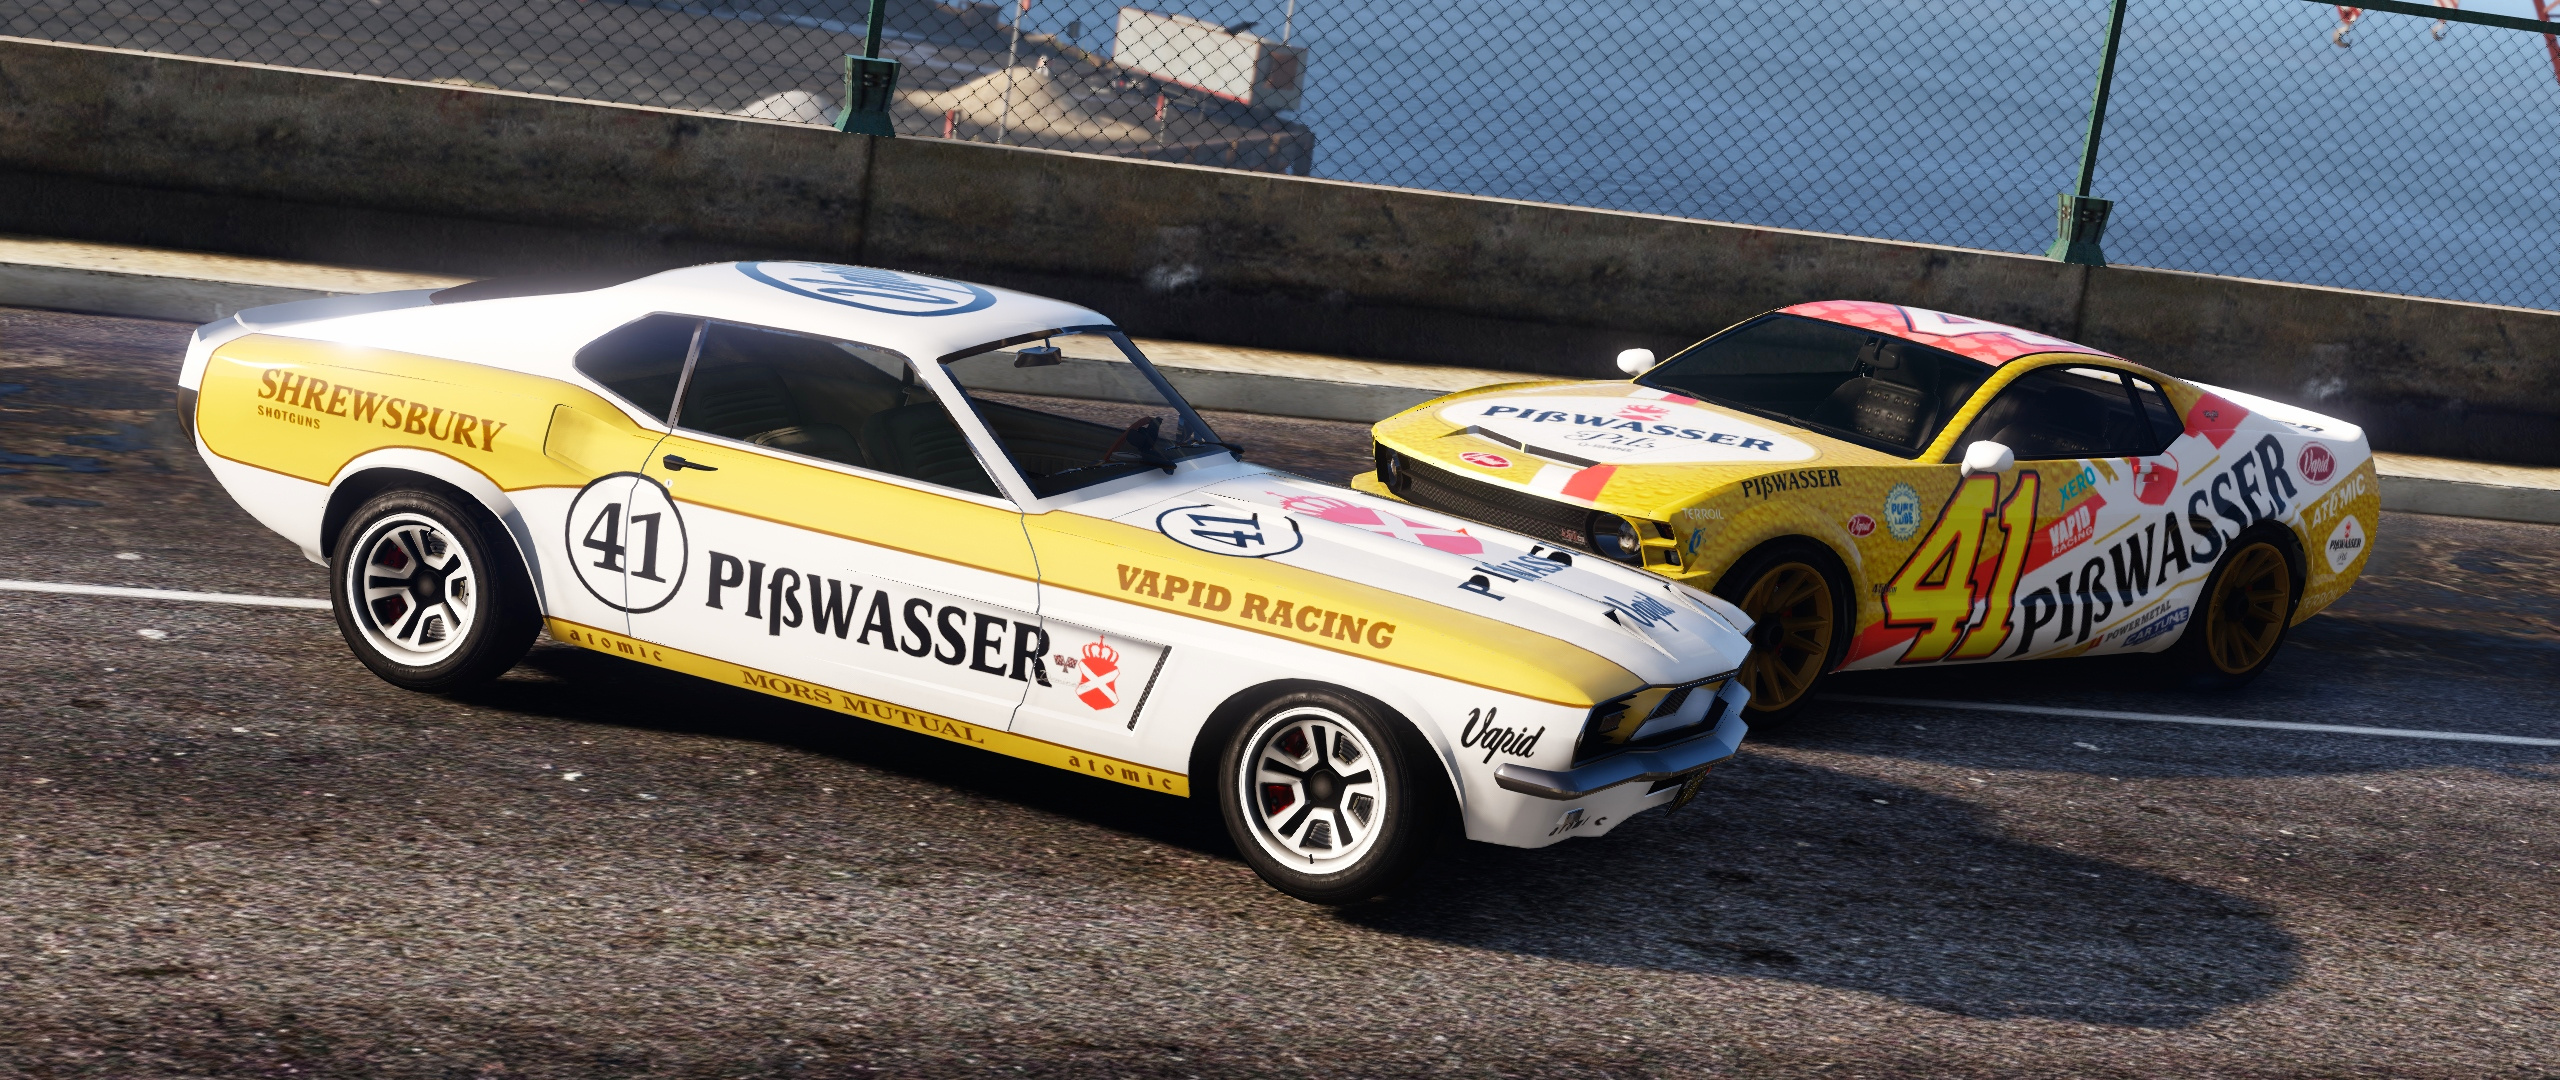 vapid dominator classic add on liveries tuning template